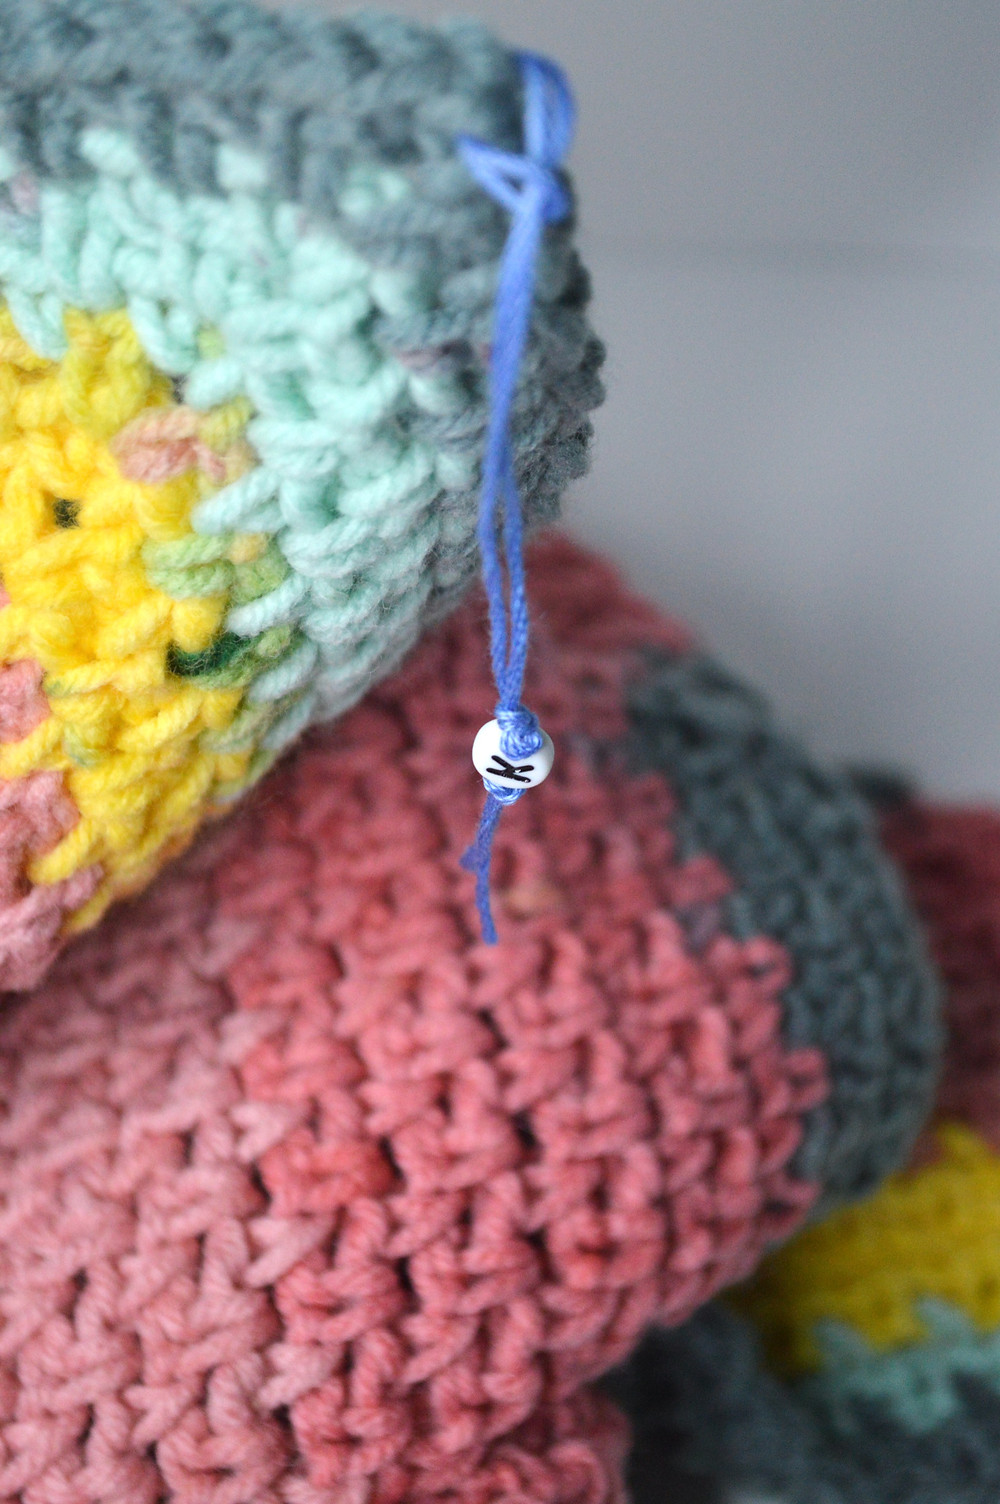 A crocheted shawl in pinks, blues, and yellows.